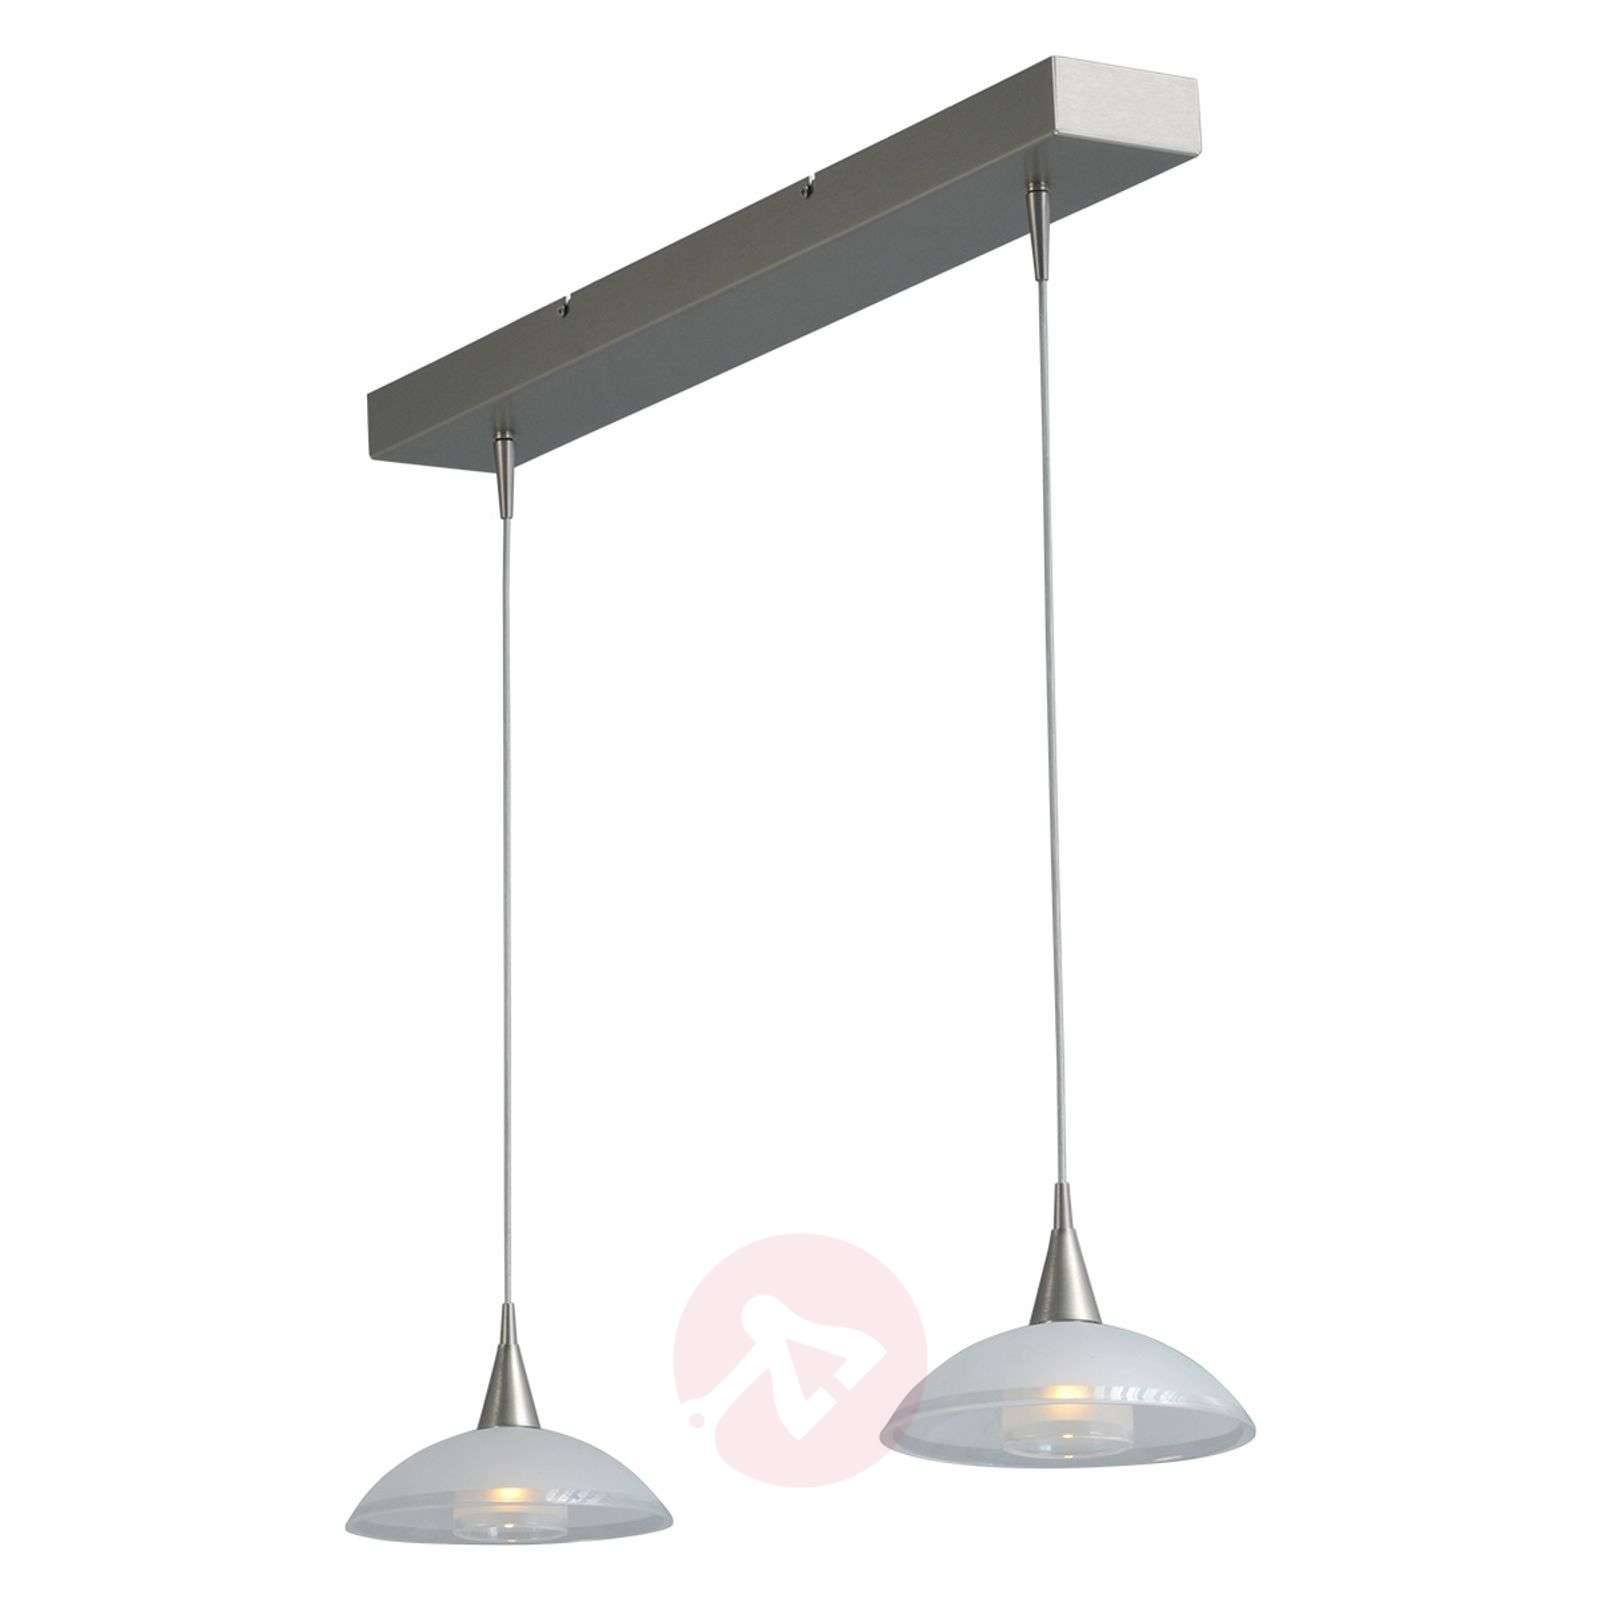 2 Suspension Moderne MelaniÀ Lampes Led 3q5RLAjc4